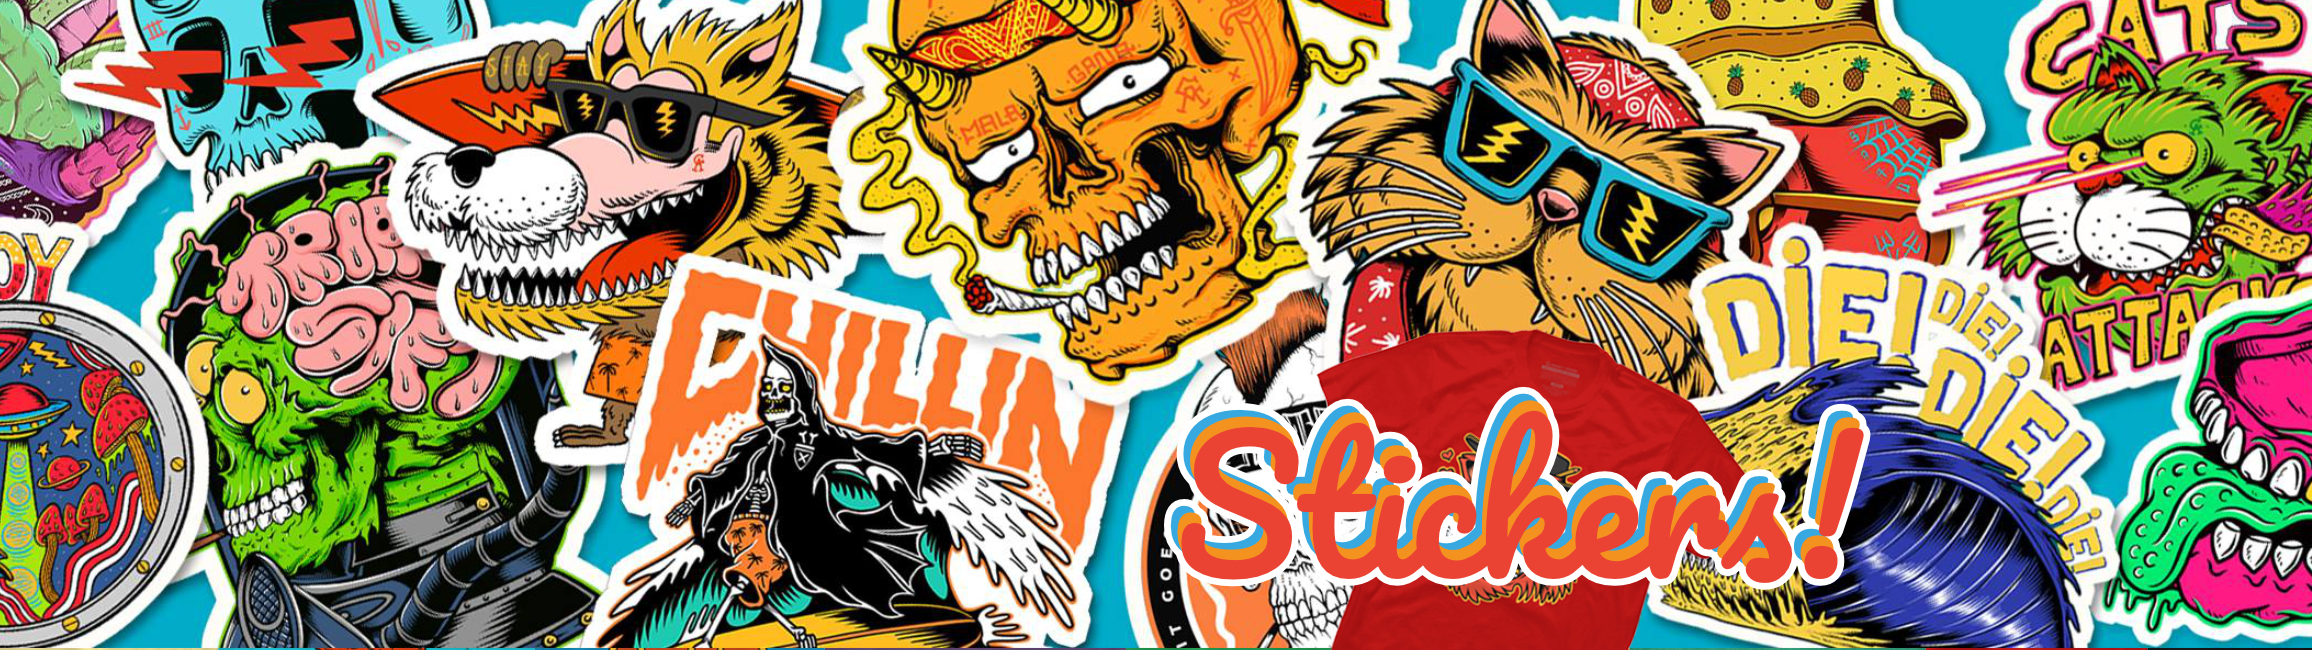 Cool laptop stickers inspired by the most famous skateboarding brands.